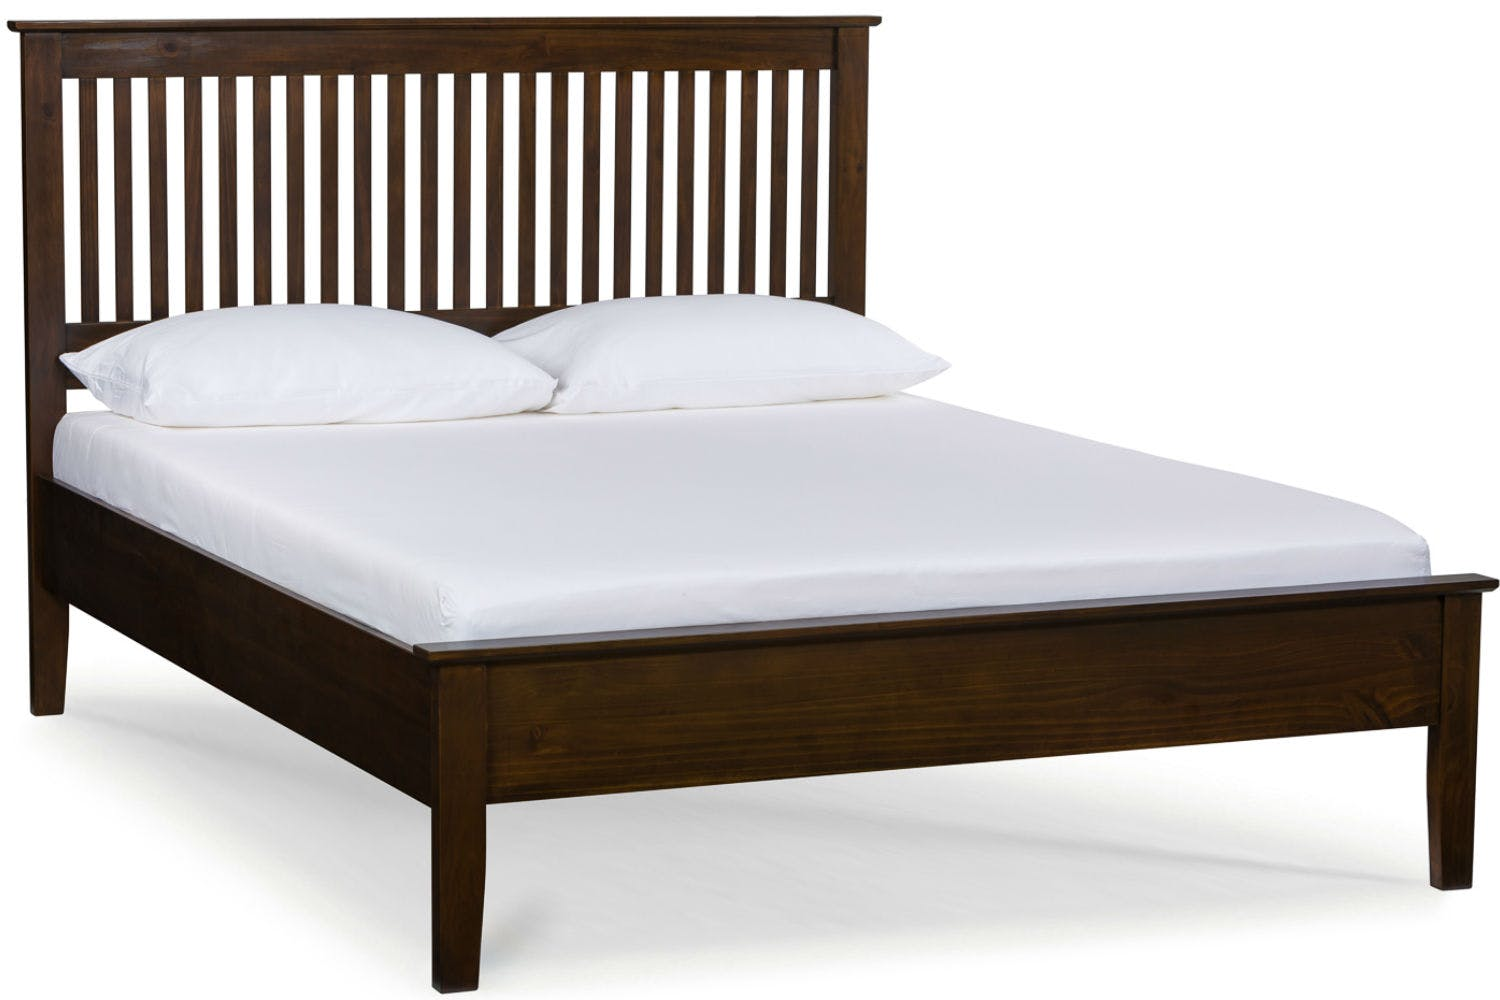 4ft Double Bed Size Wentworth Small Double Bed Frame 4ft